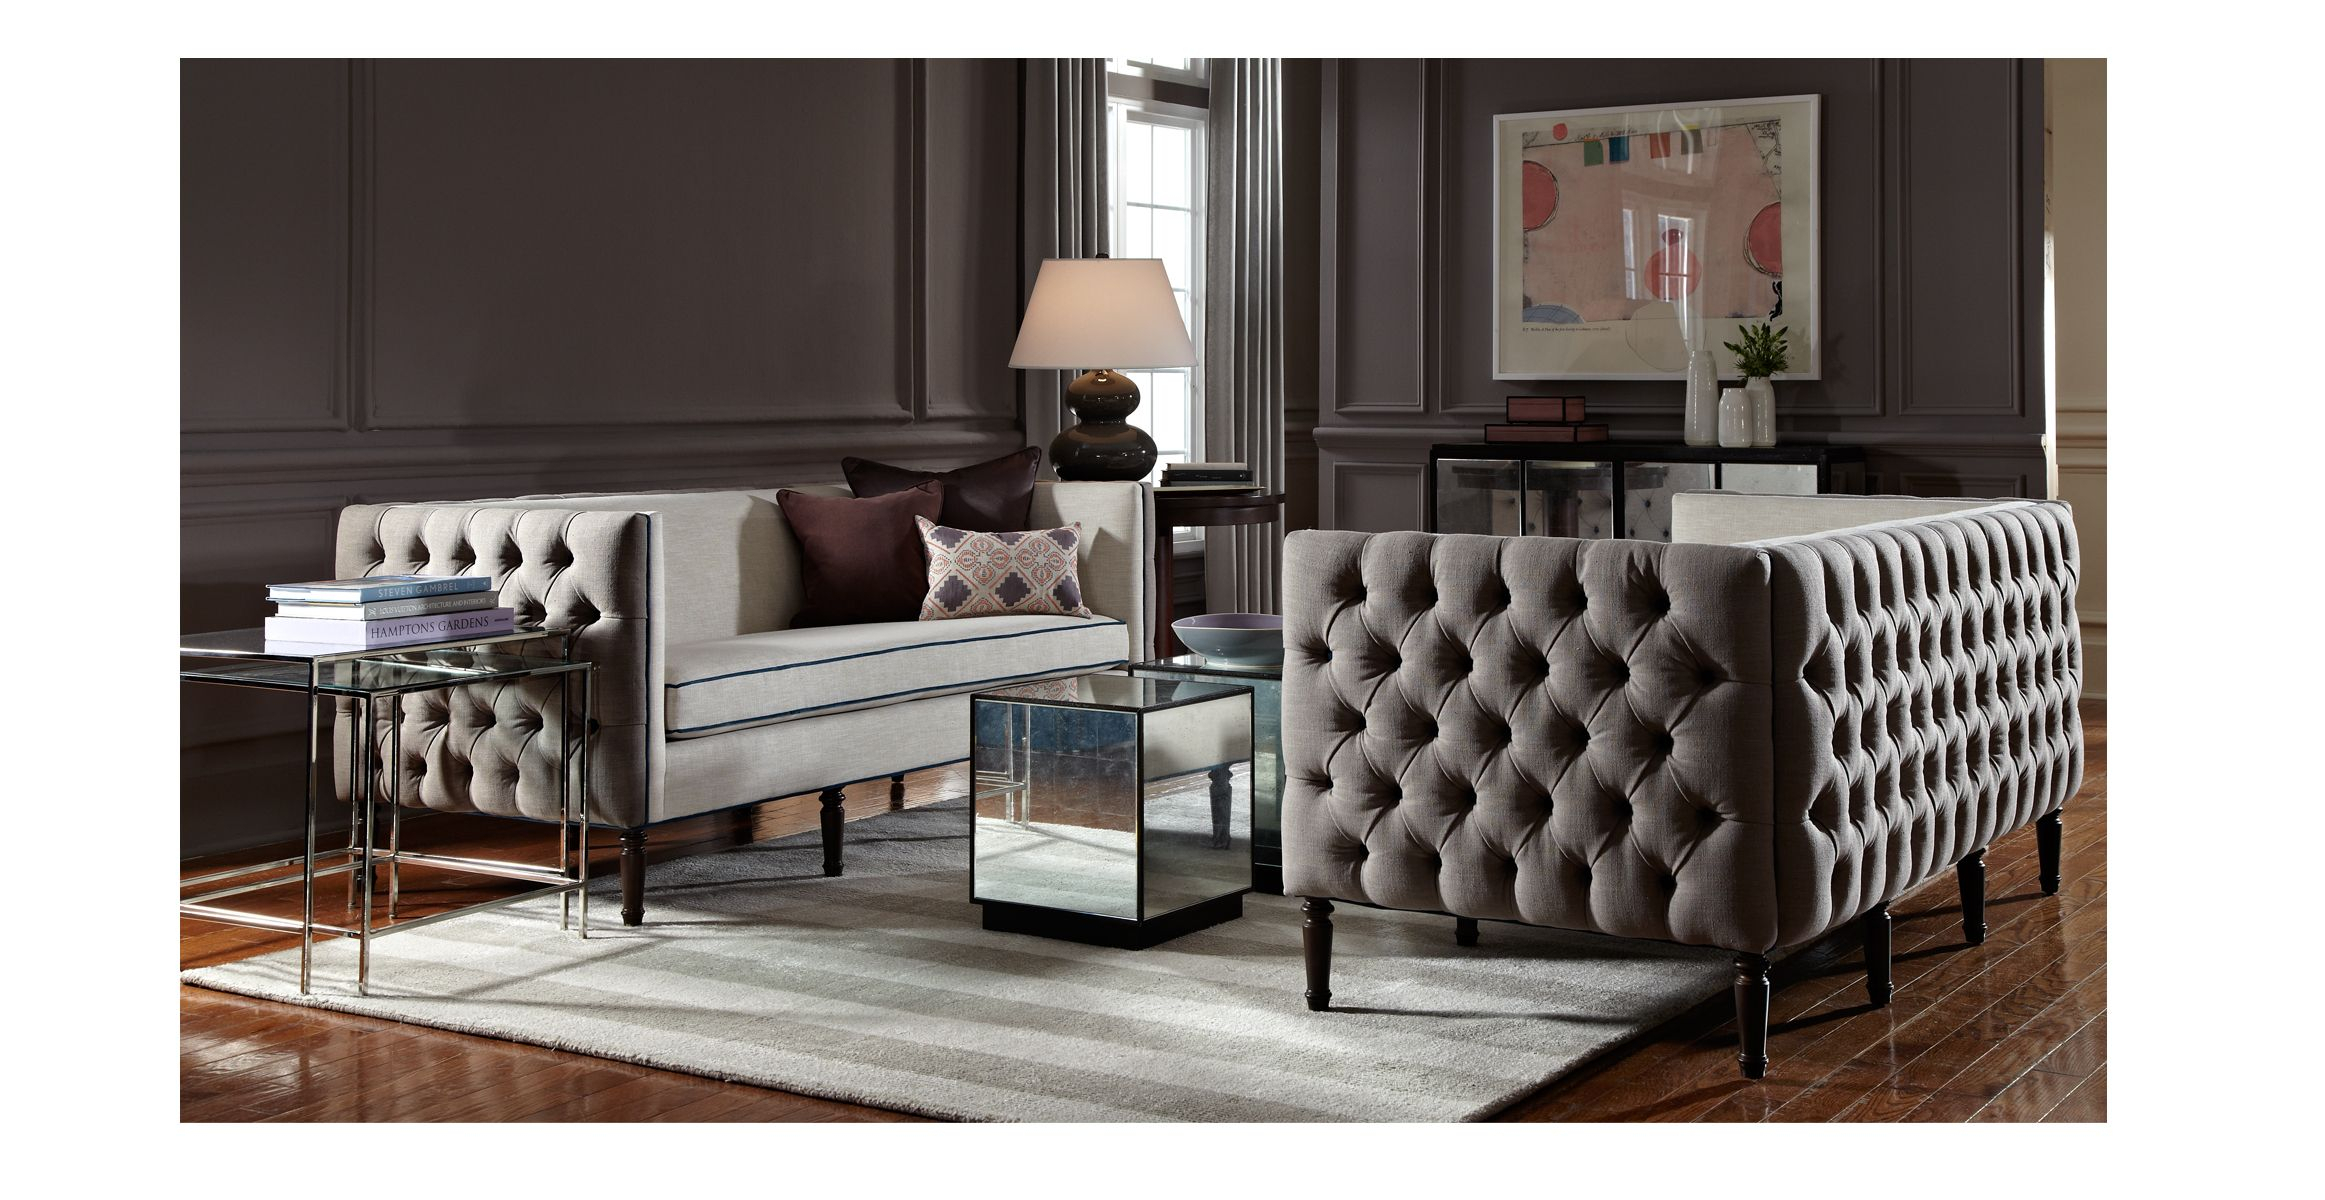 Modern Tufted Sofa - Google Search | Turn Of The Century Moderne with Parsons Travertine Top & Stainless Steel Base 48X16 Console Tables (Image 20 of 30)